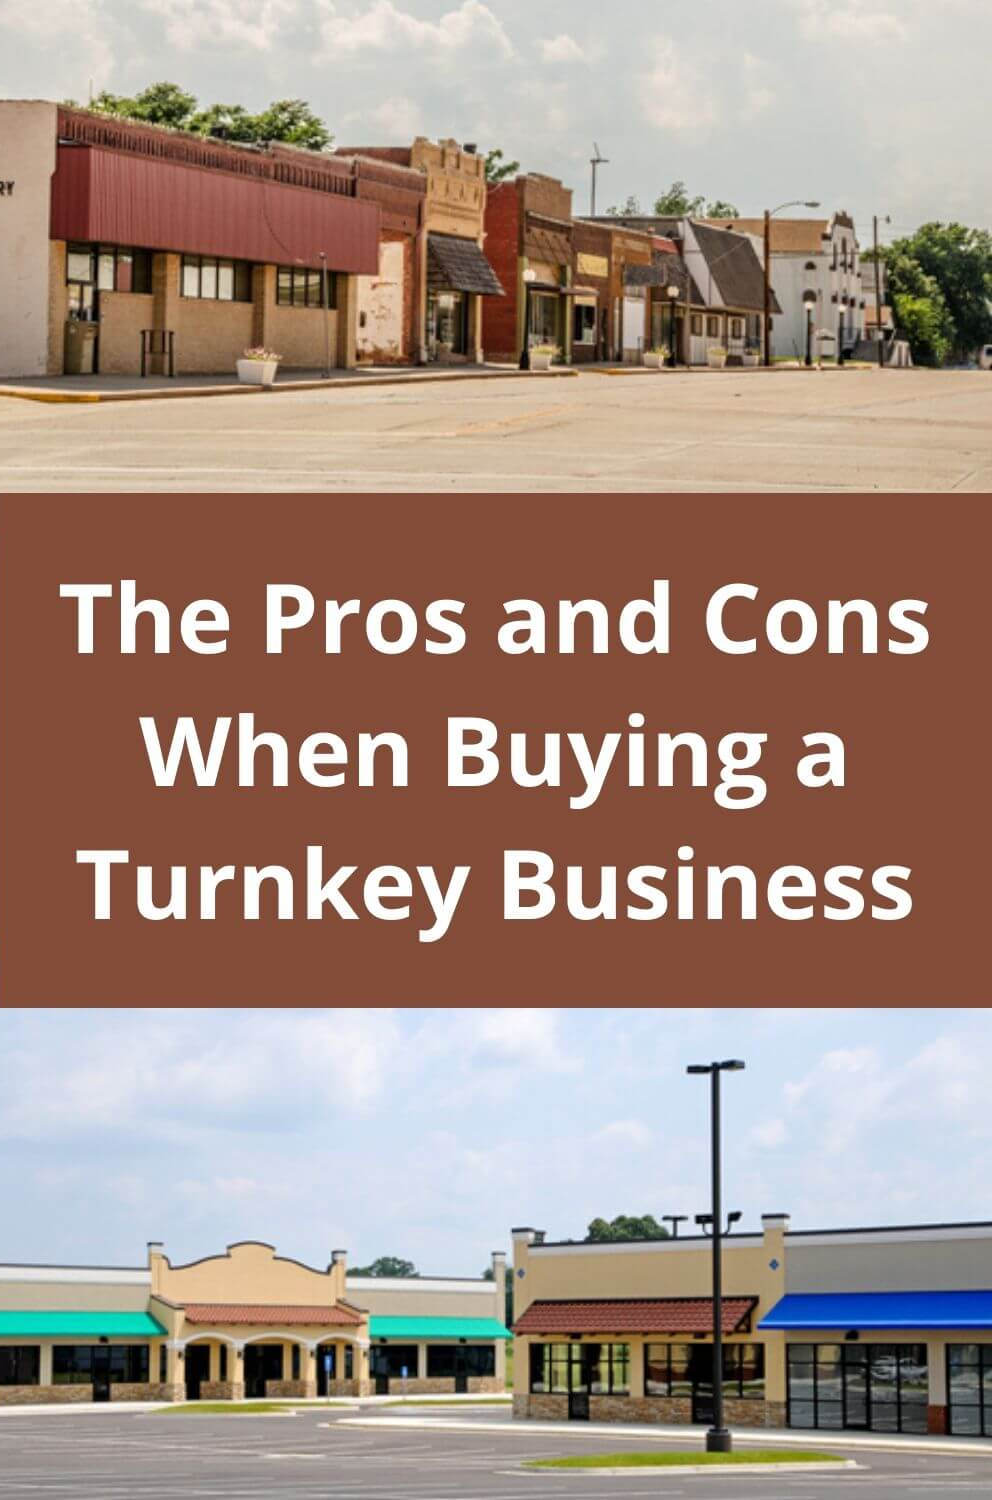 The Pros and Cons When Buying a Trunkey Business